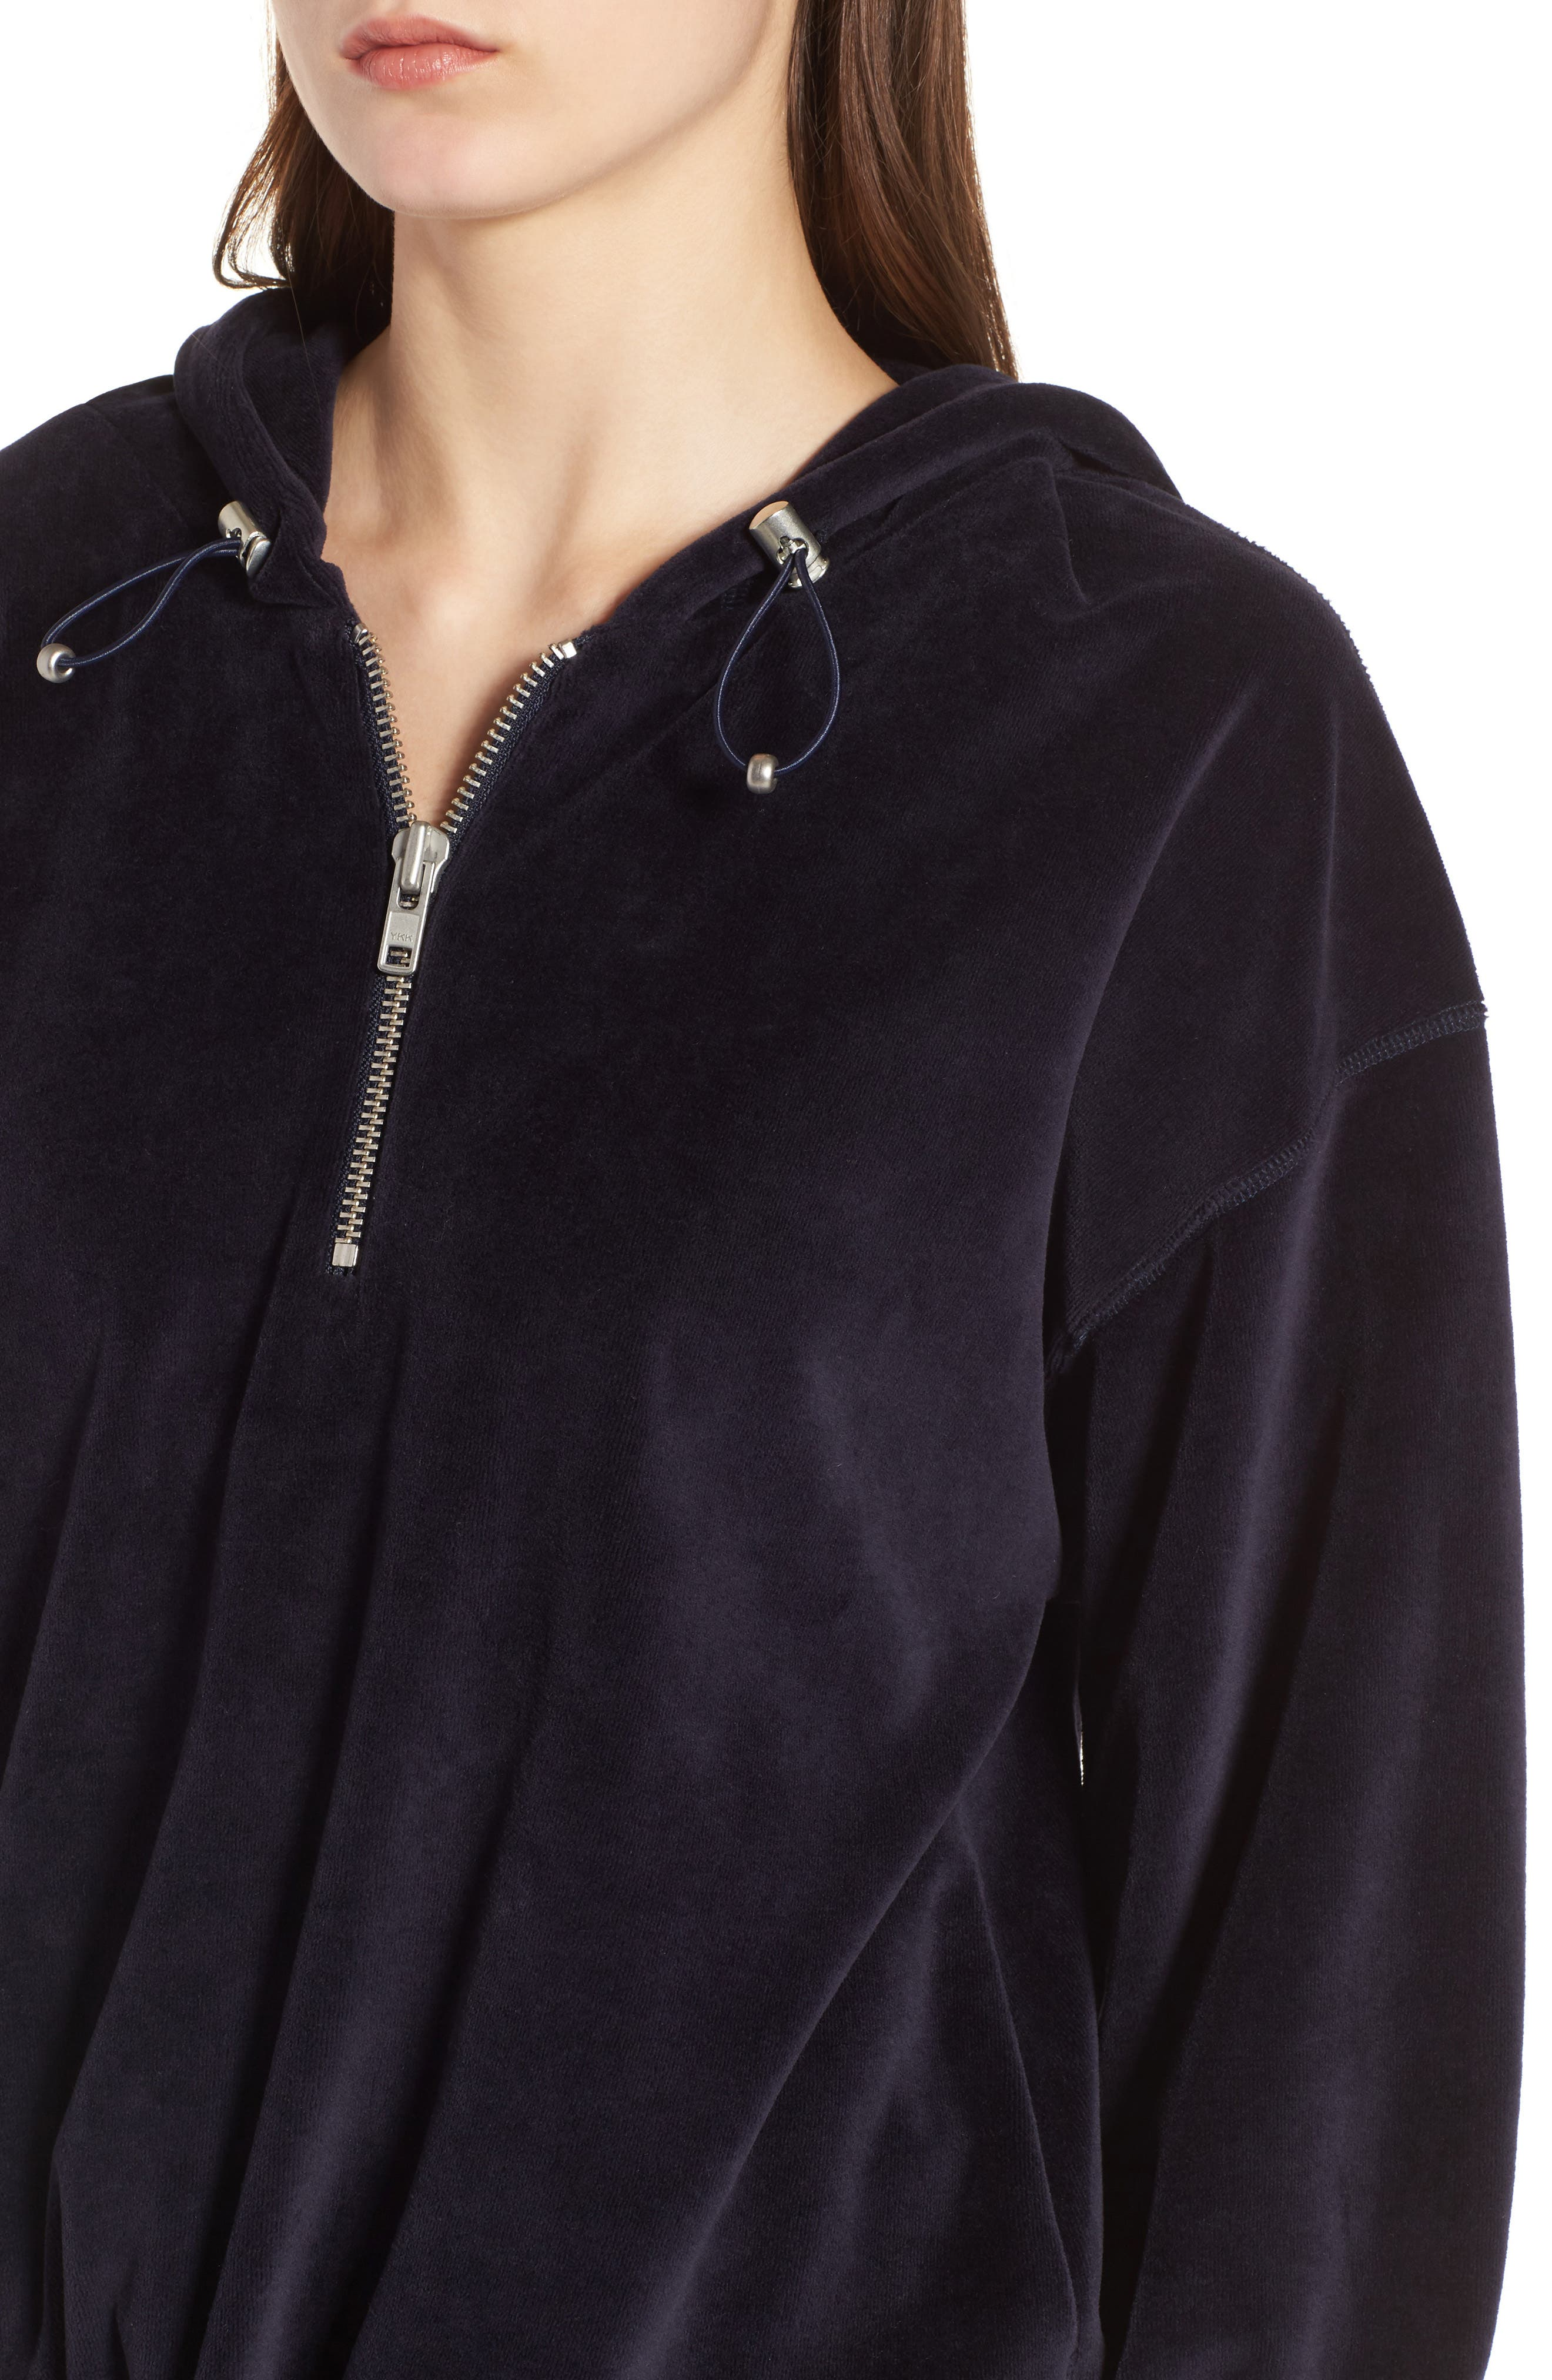 Oversize Velour Hoodie,                             Alternate thumbnail 4, color,                             001